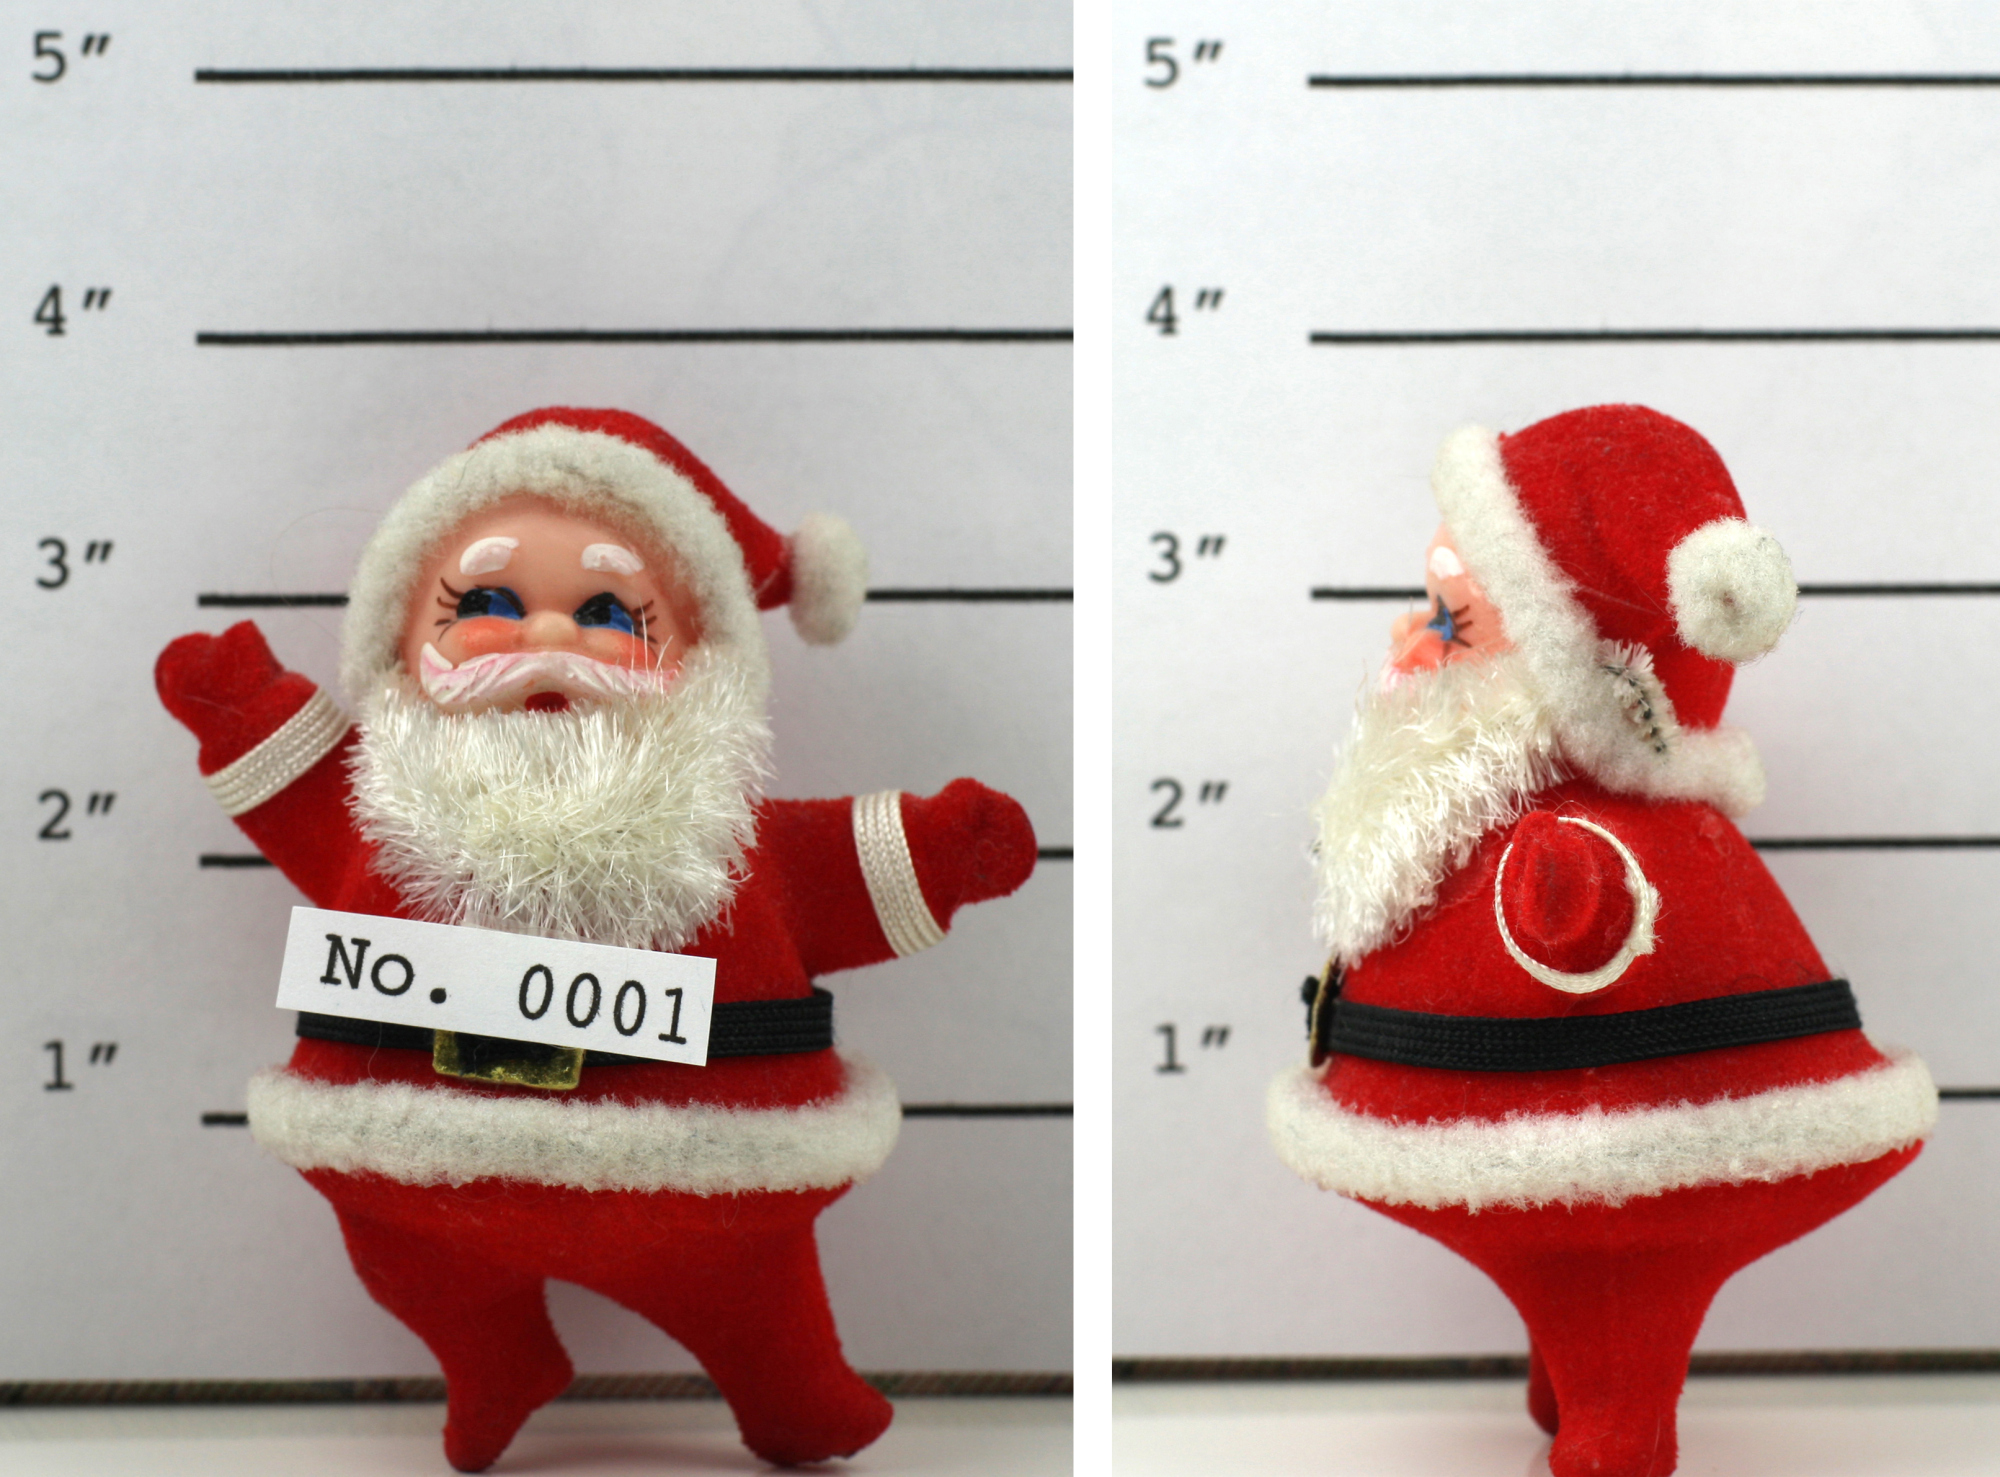 Wanted: Santa Claus. CC artwork by Kevin Dooley.